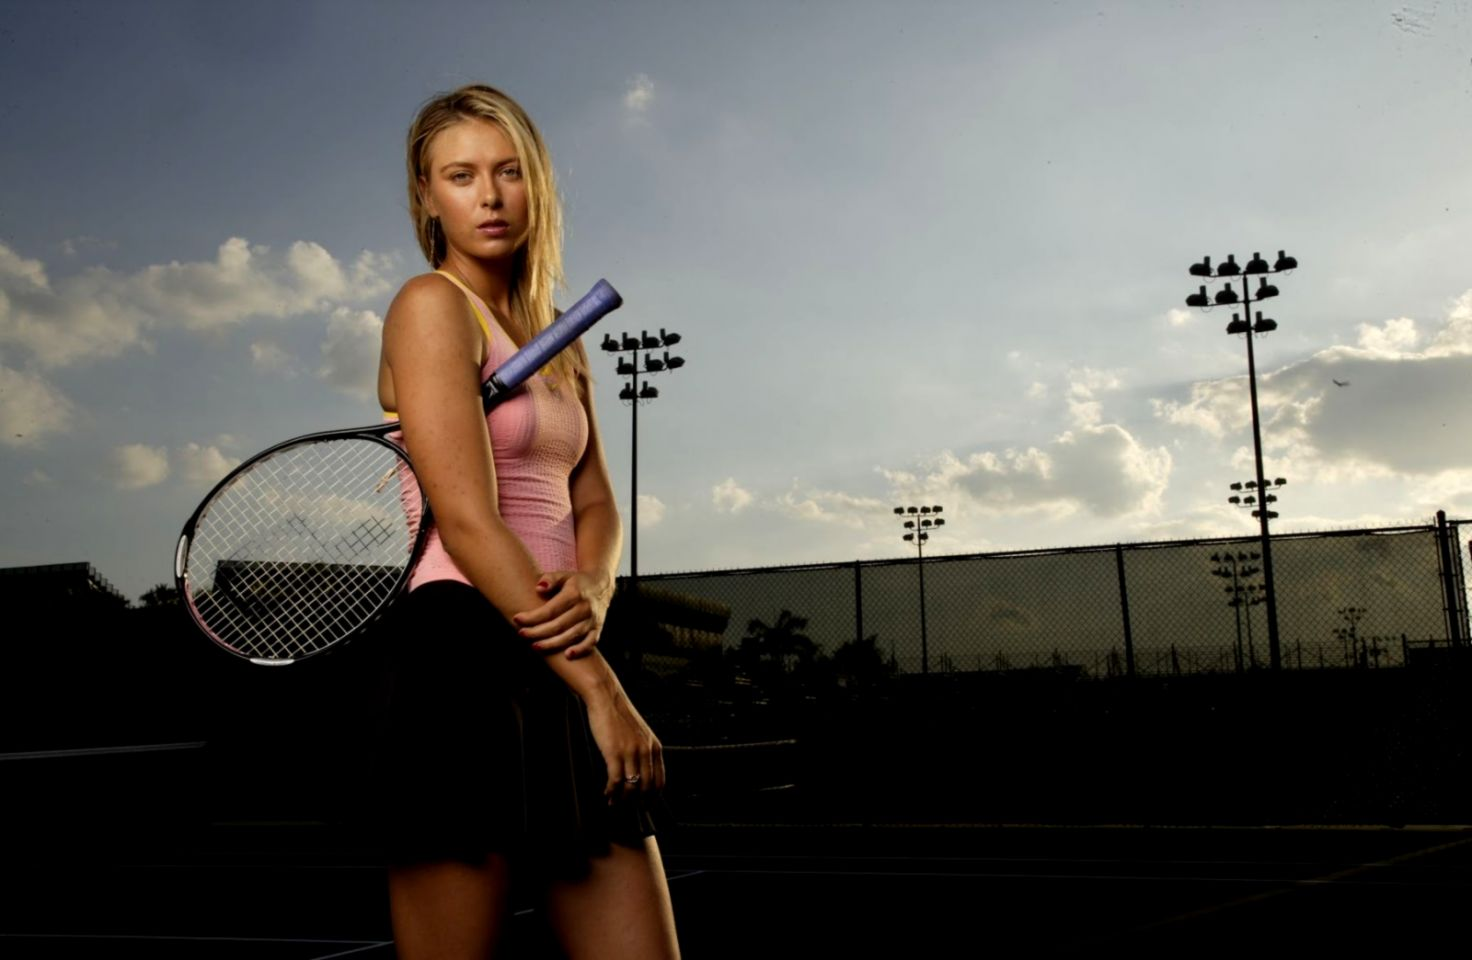 Maria Sharapova HD Wallpapers  Most beautiful places in the world